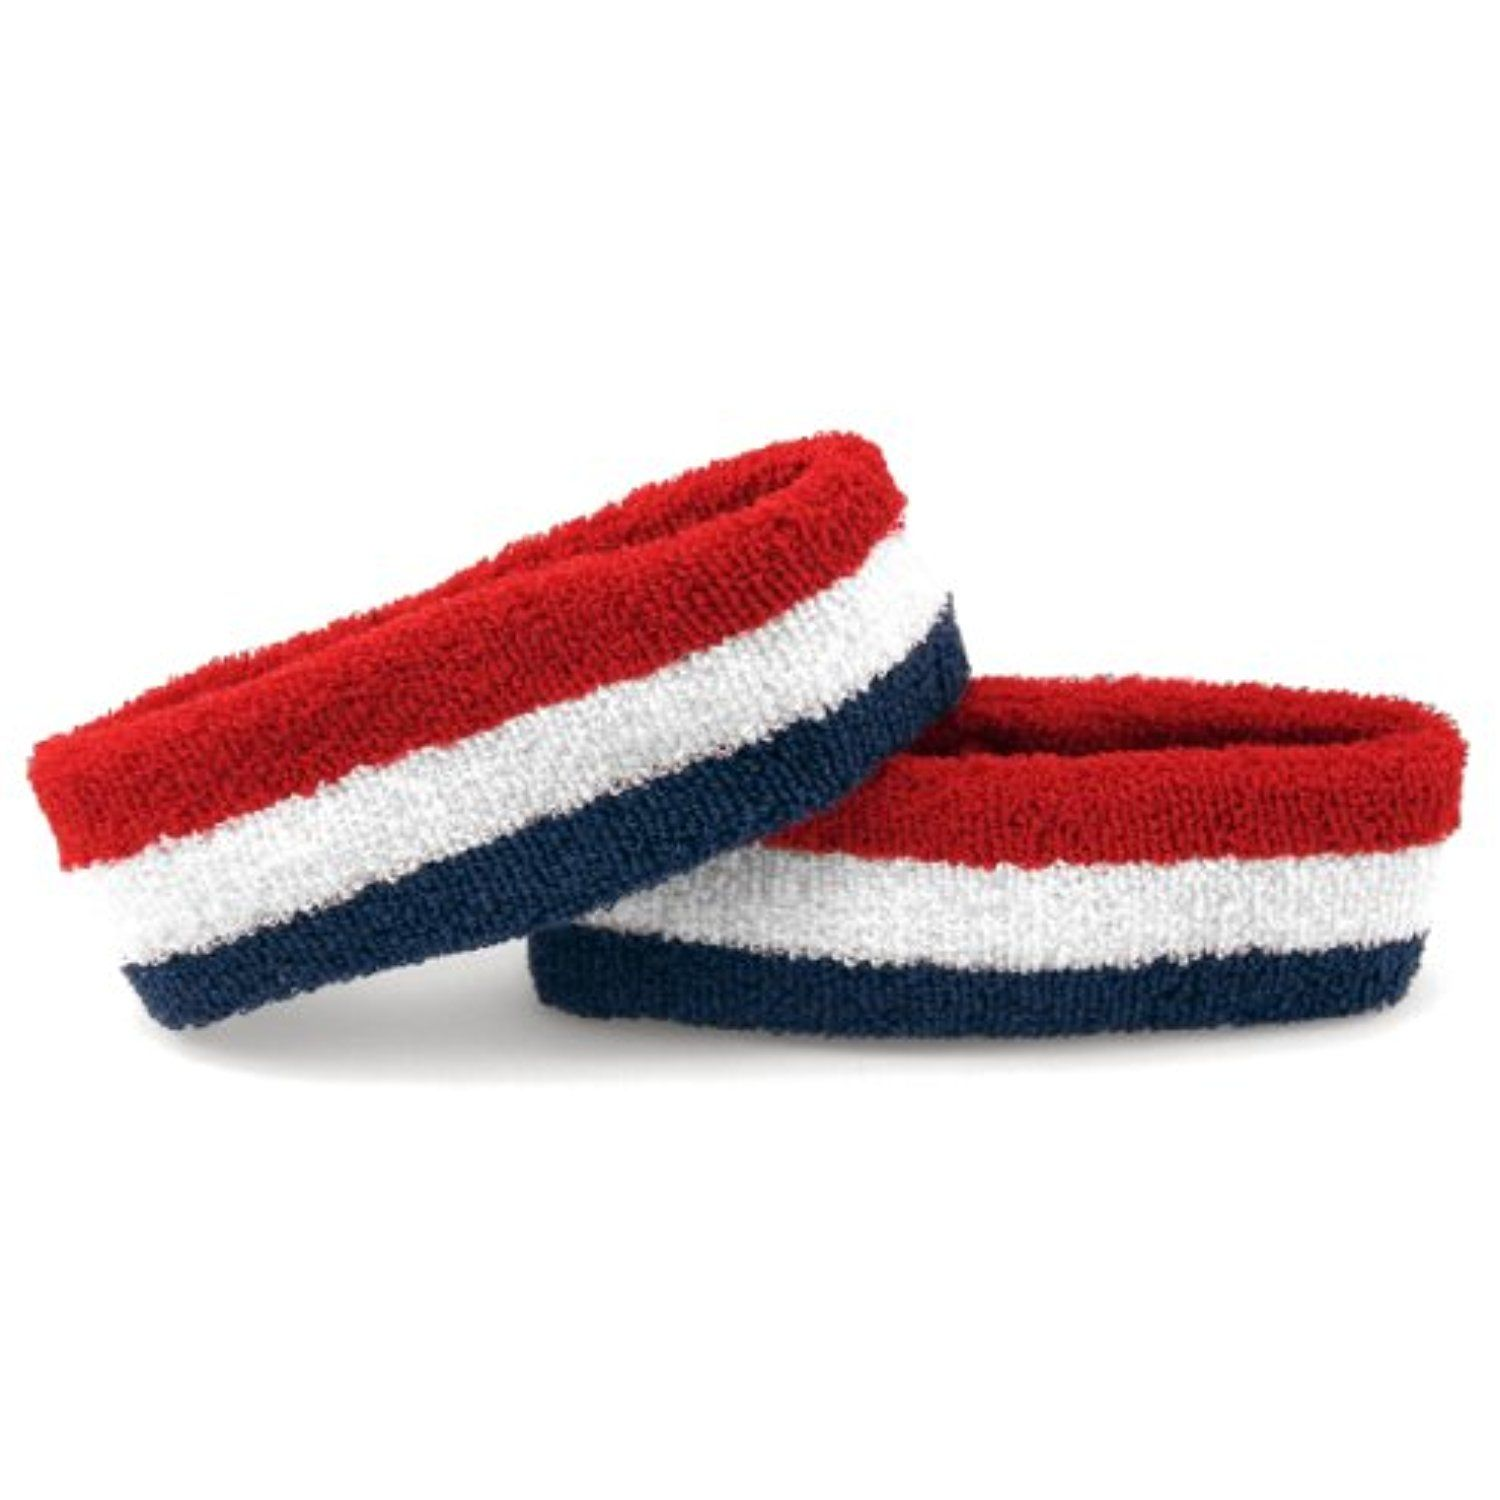 The Patriot Terry Cloth Sweatband Headband True Merica Red